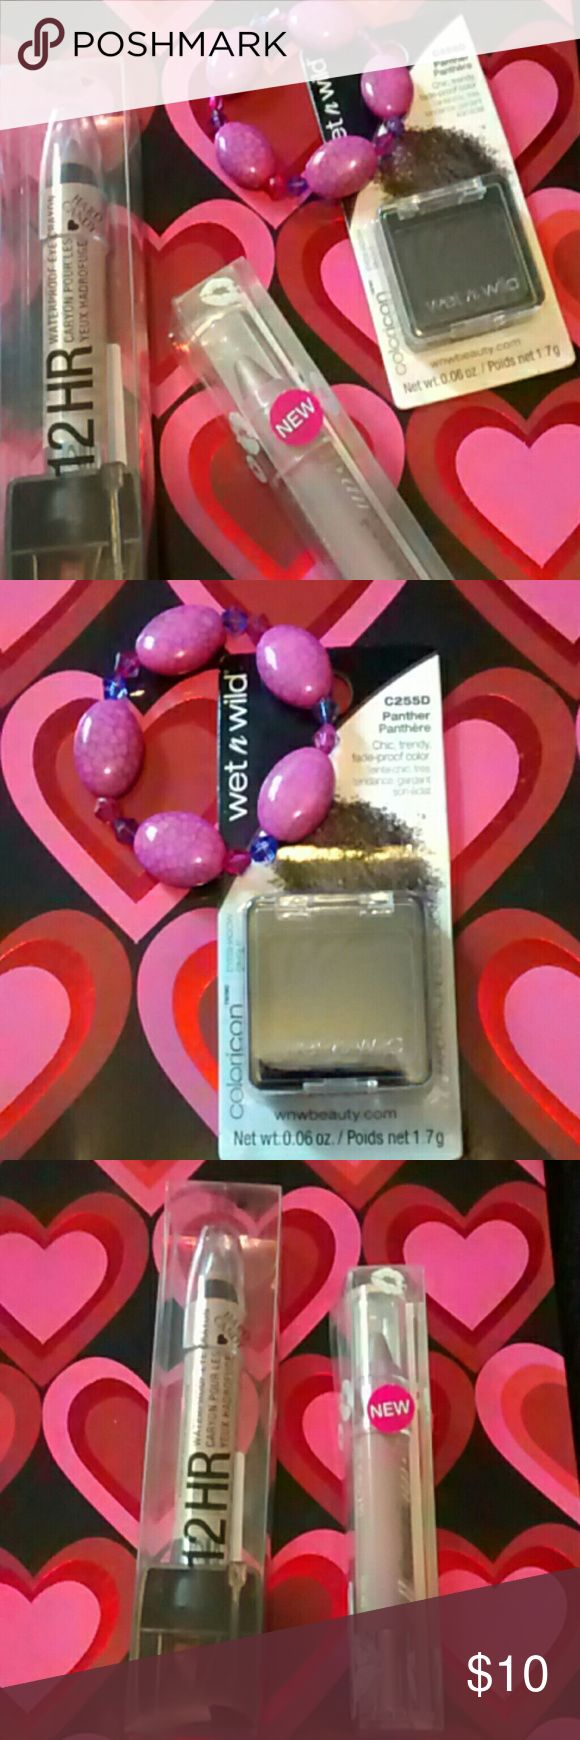 HARD <3 CANDY & wet n' wild  (price firm) 4pc bundle 1 handmade pink/purple bracelet that's on the smaller side, would fit a very small wrist or child's wrist. 1 wet n' wild single eyeshadow  -C2552  -panther  -chic,trendy, fade-proof color 1 HARD <3 CANDY 12 hr waterproof eye crayon   -780   -BLONDIE   -comes with sharpener 1 HARD <3 CANDY all glossed up hydrating lip stain   -791   -FAIR LADY  All makeup is new and sealed Hard candy makeup does not test on our animal friends.  Bracelet…